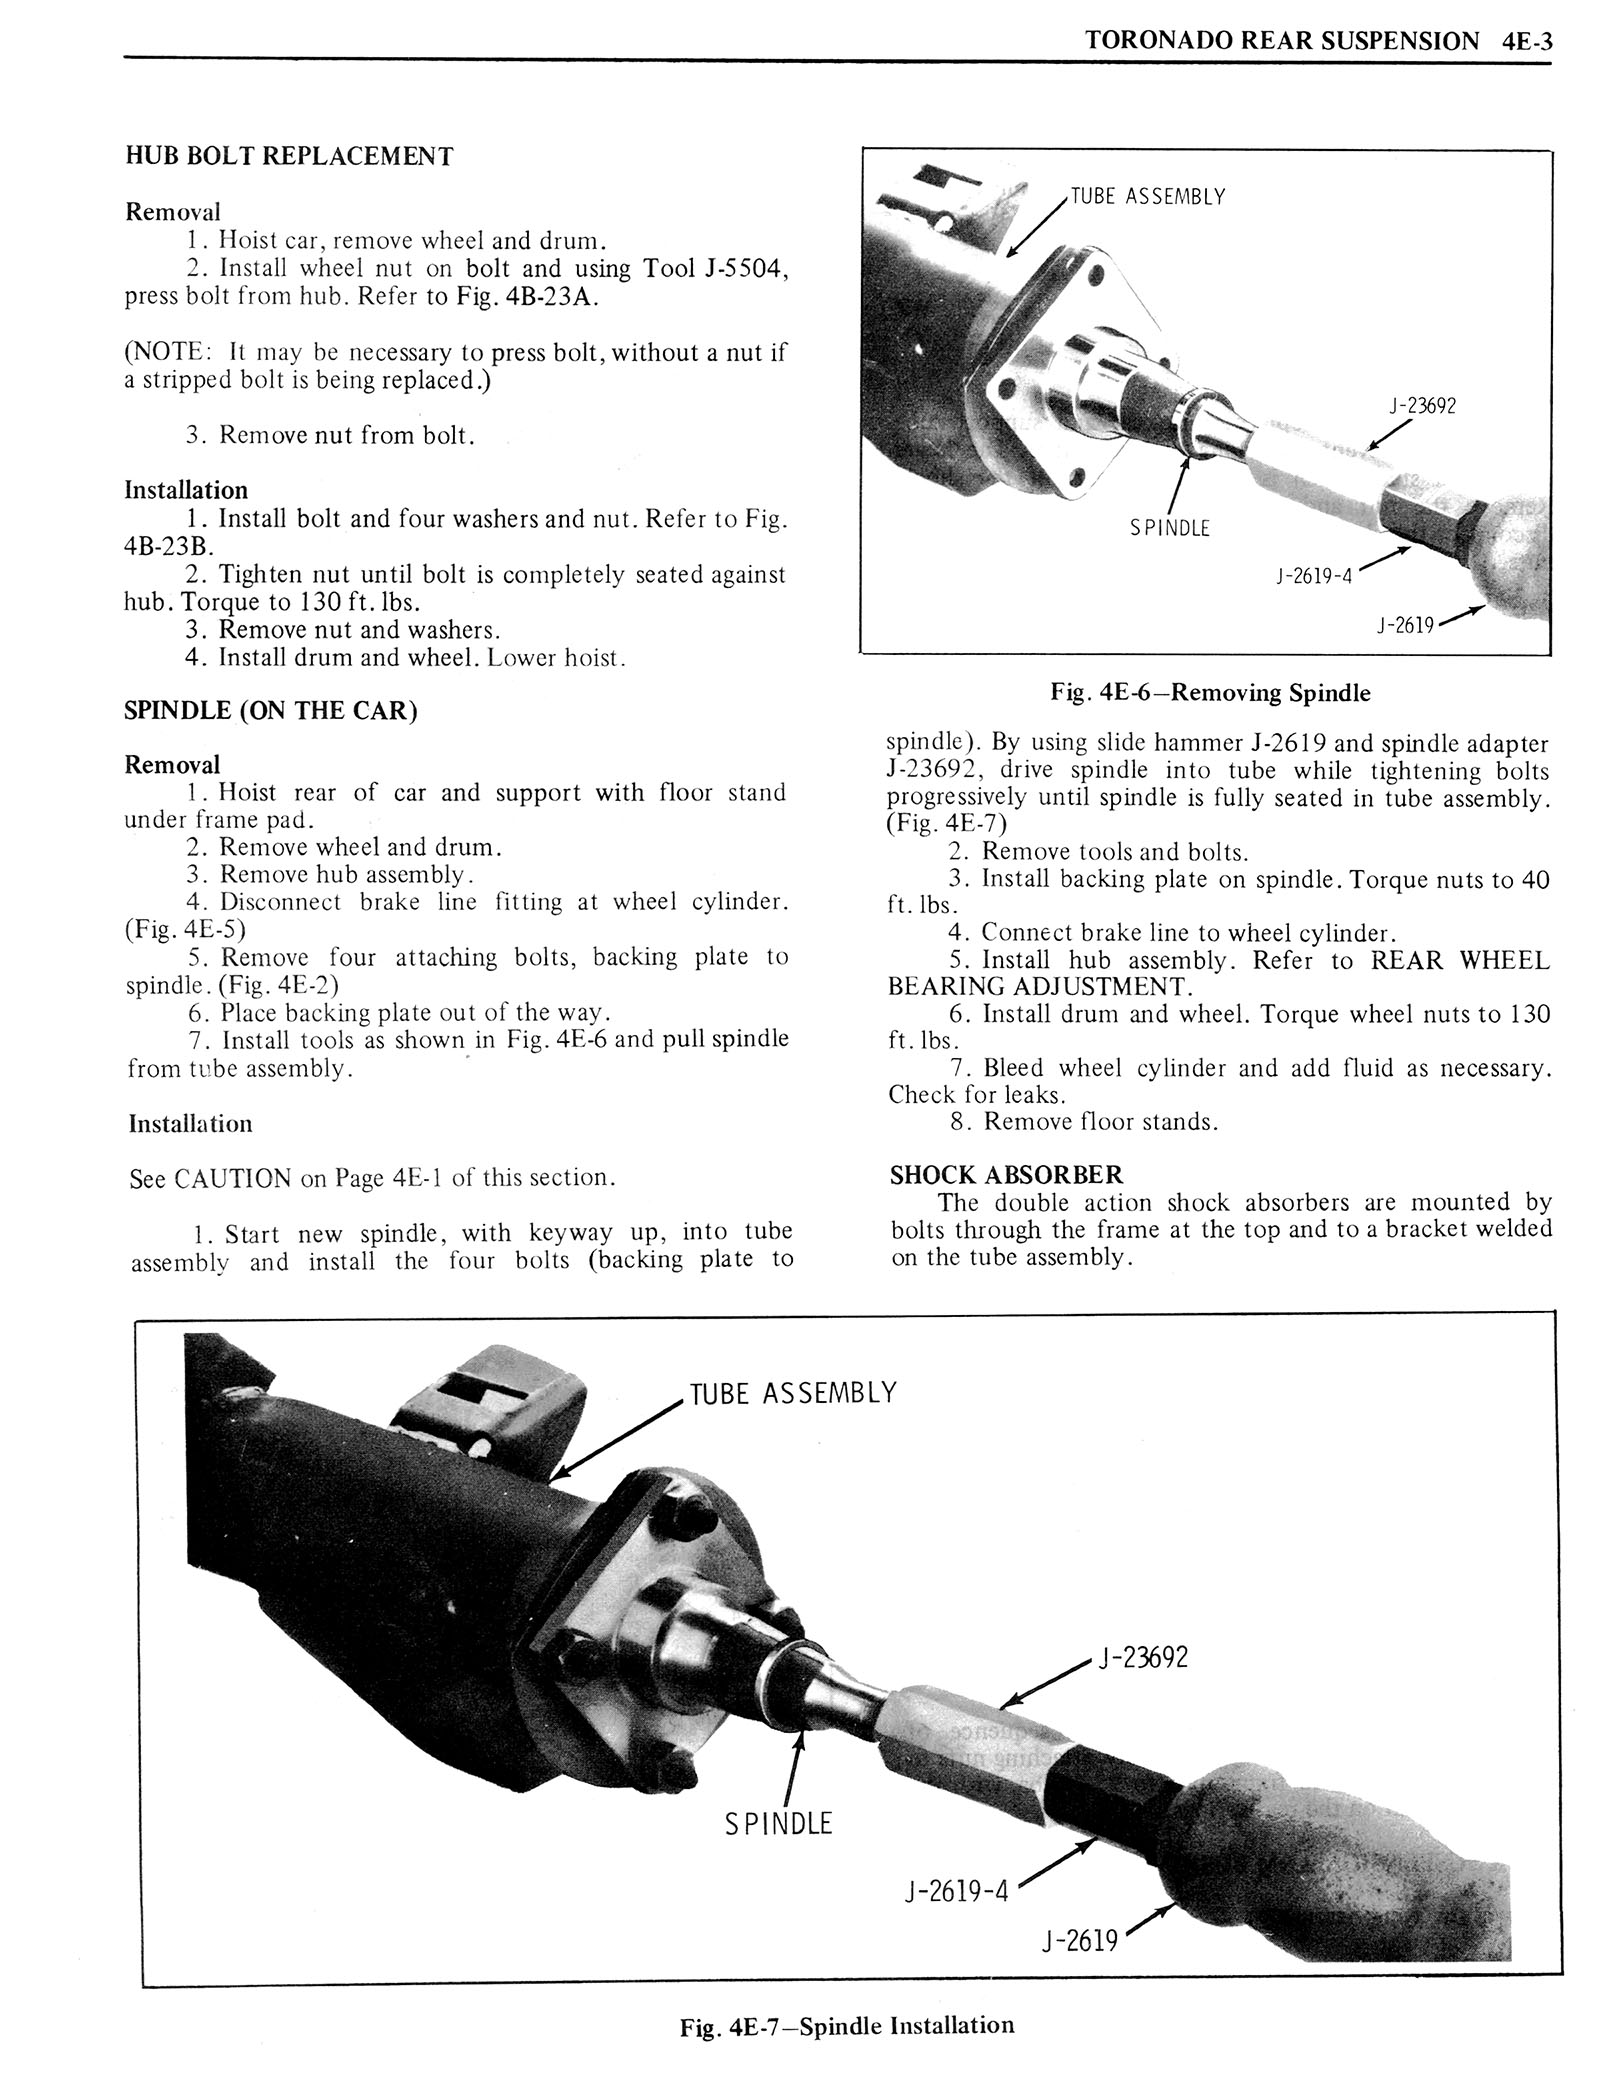 1976 Oldsmobile Service Manual page 329 of 1390